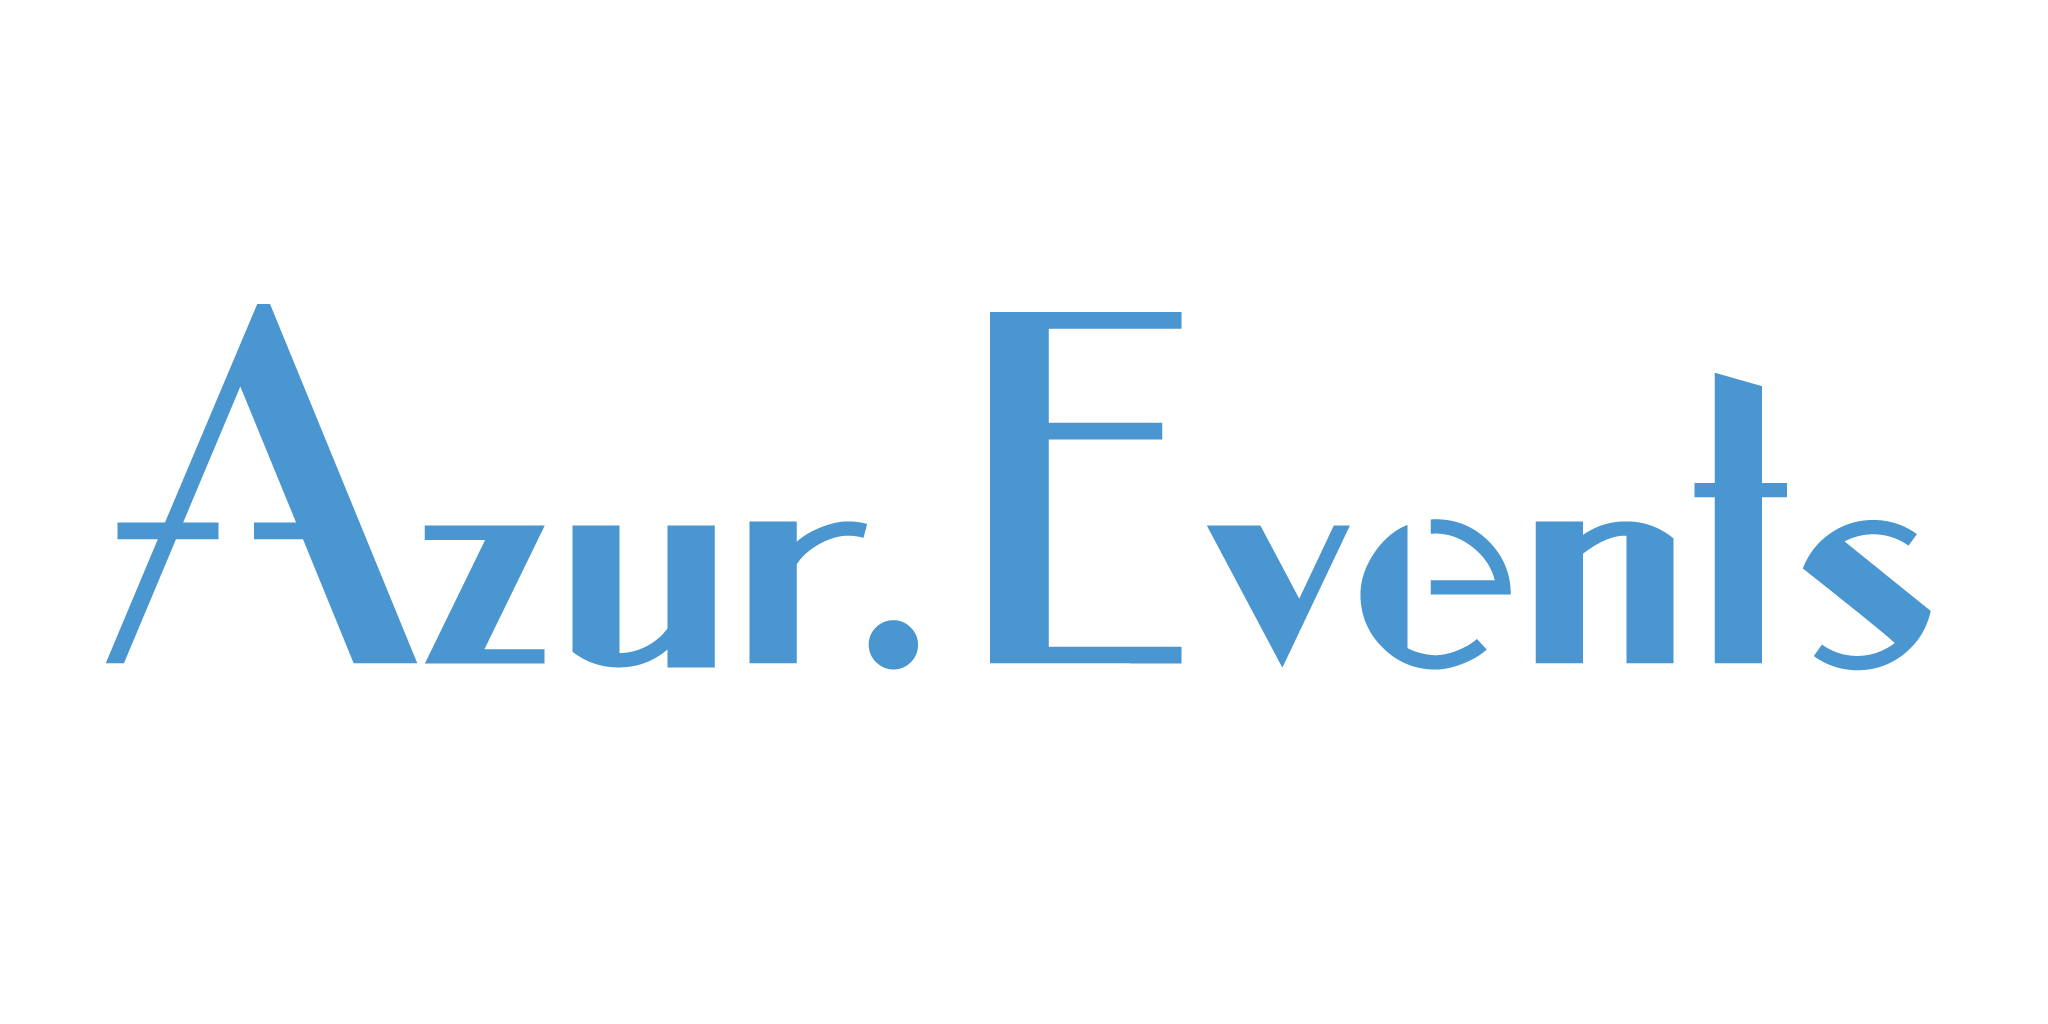 Azur.Events